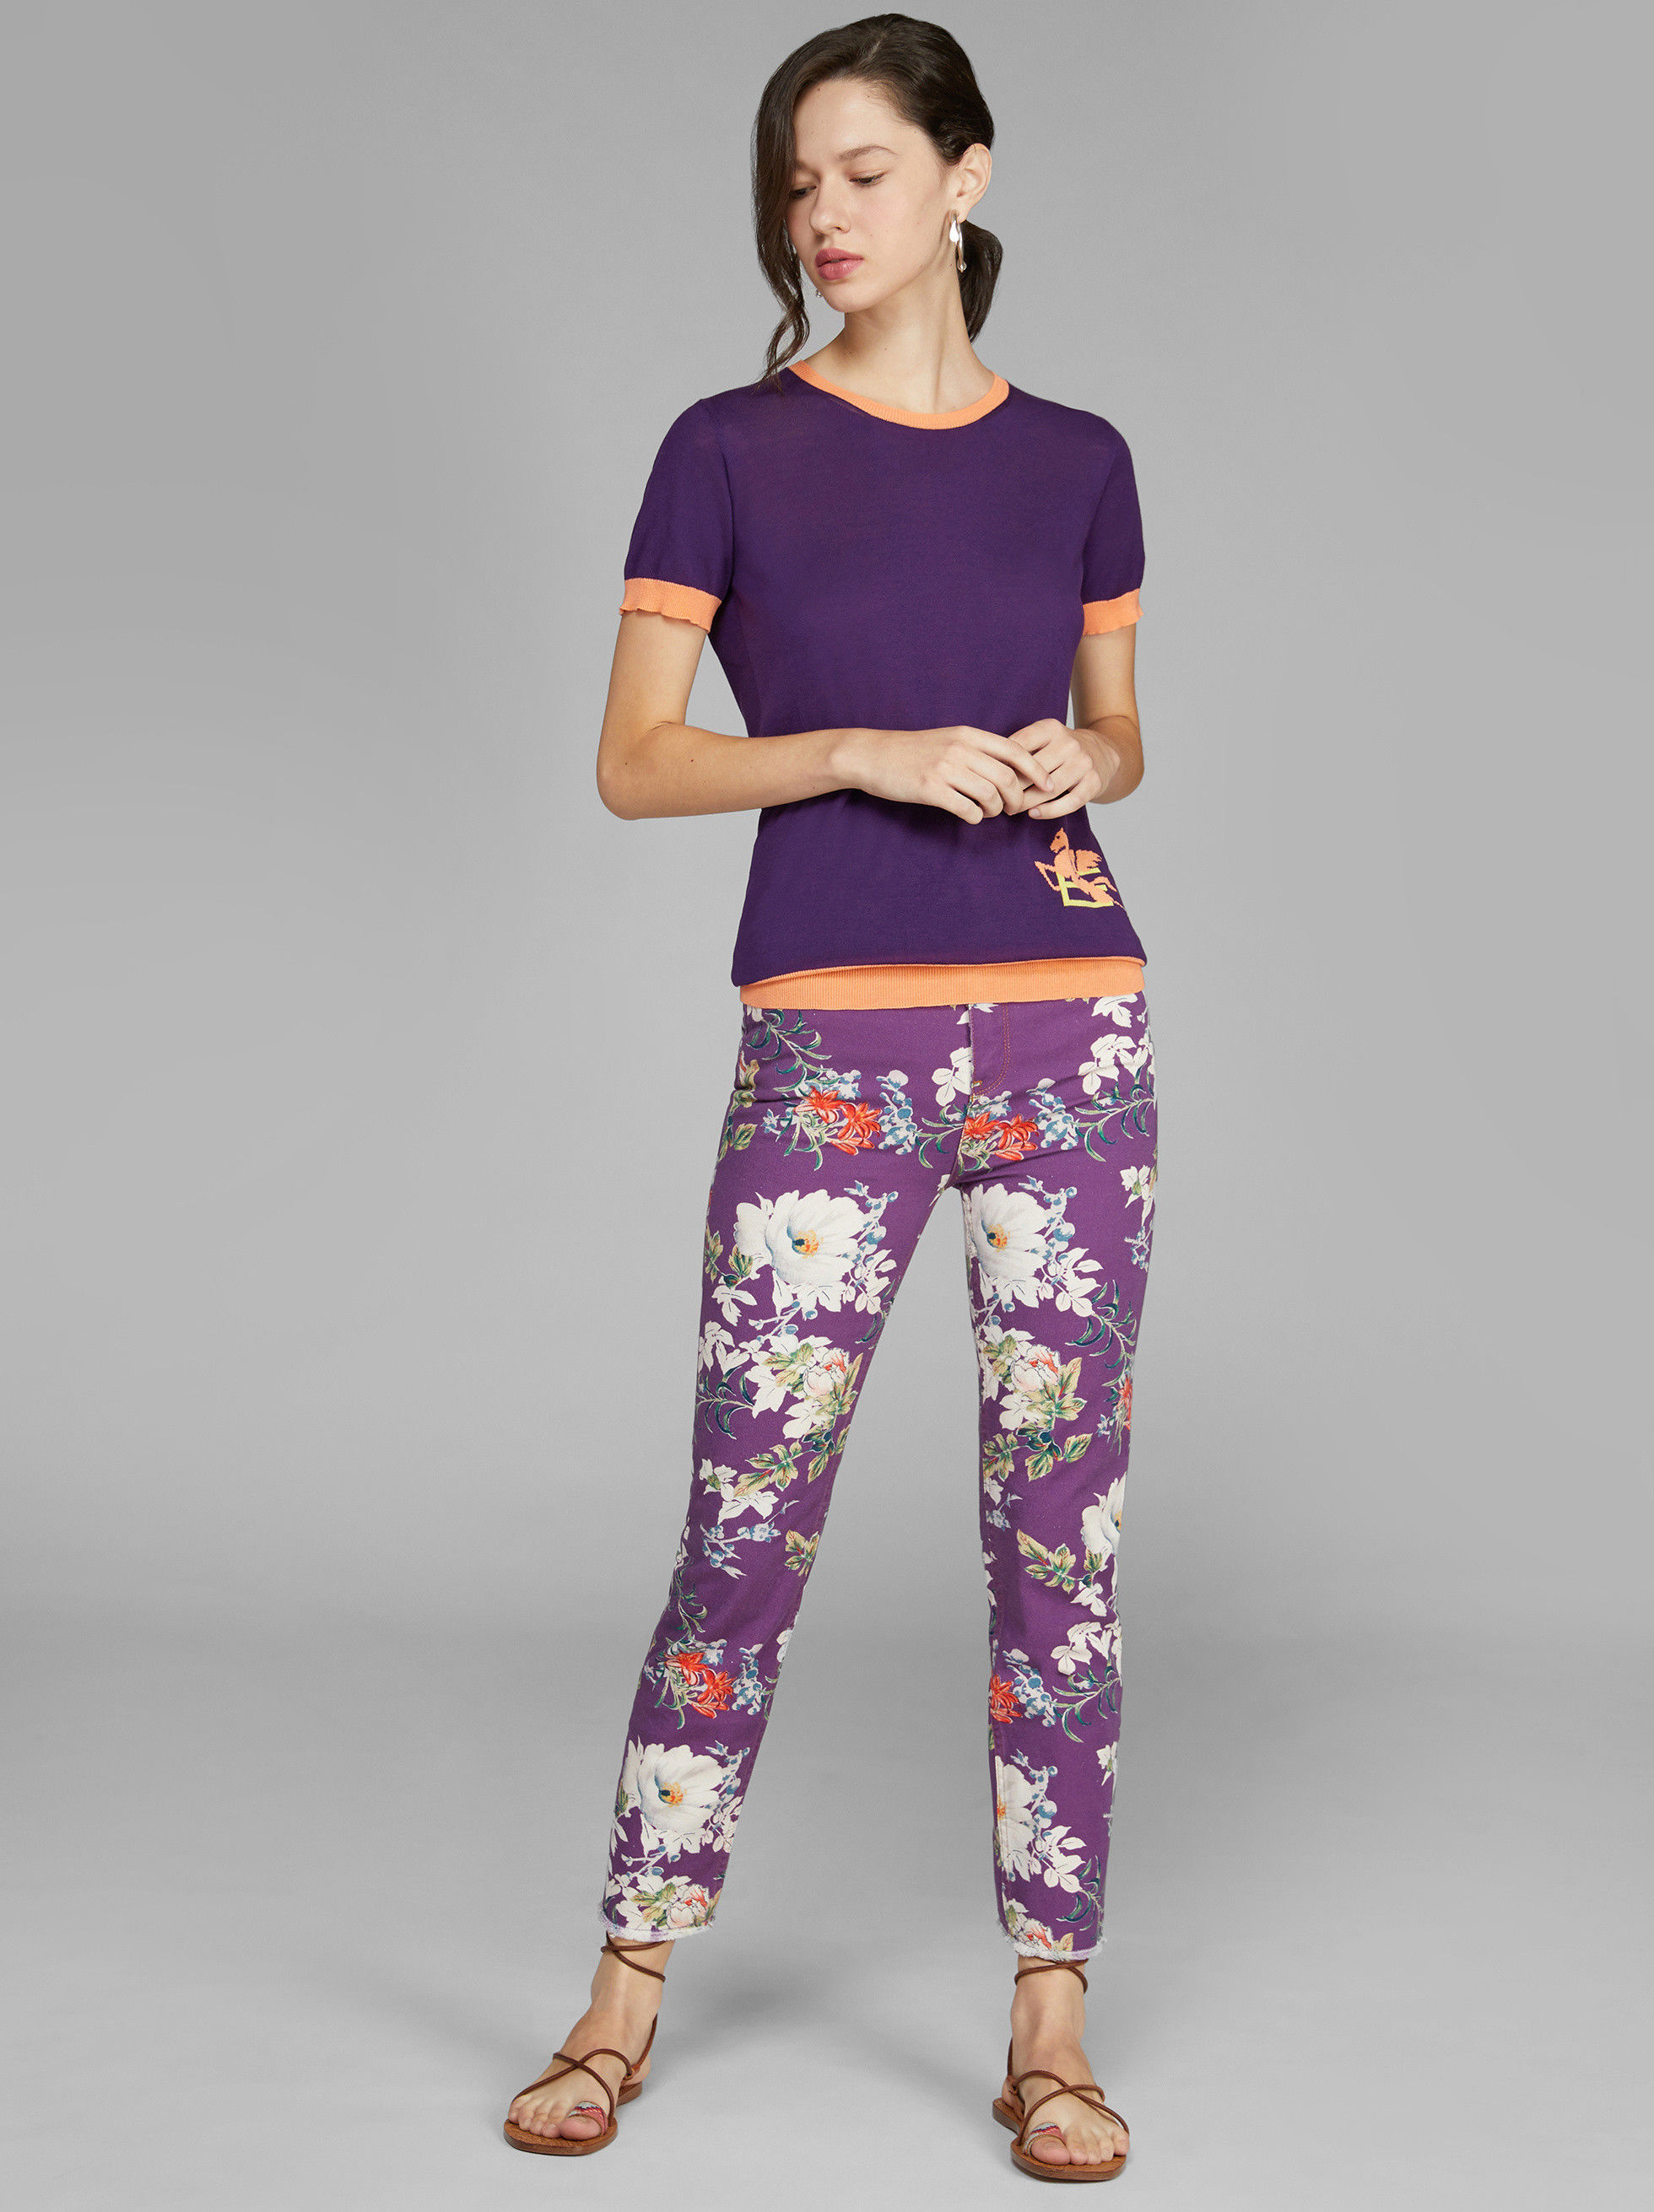 FLORAL PRINT JEANS by Etro, available on etro.com Bella Hadid Pants SIMILAR PRODUCT